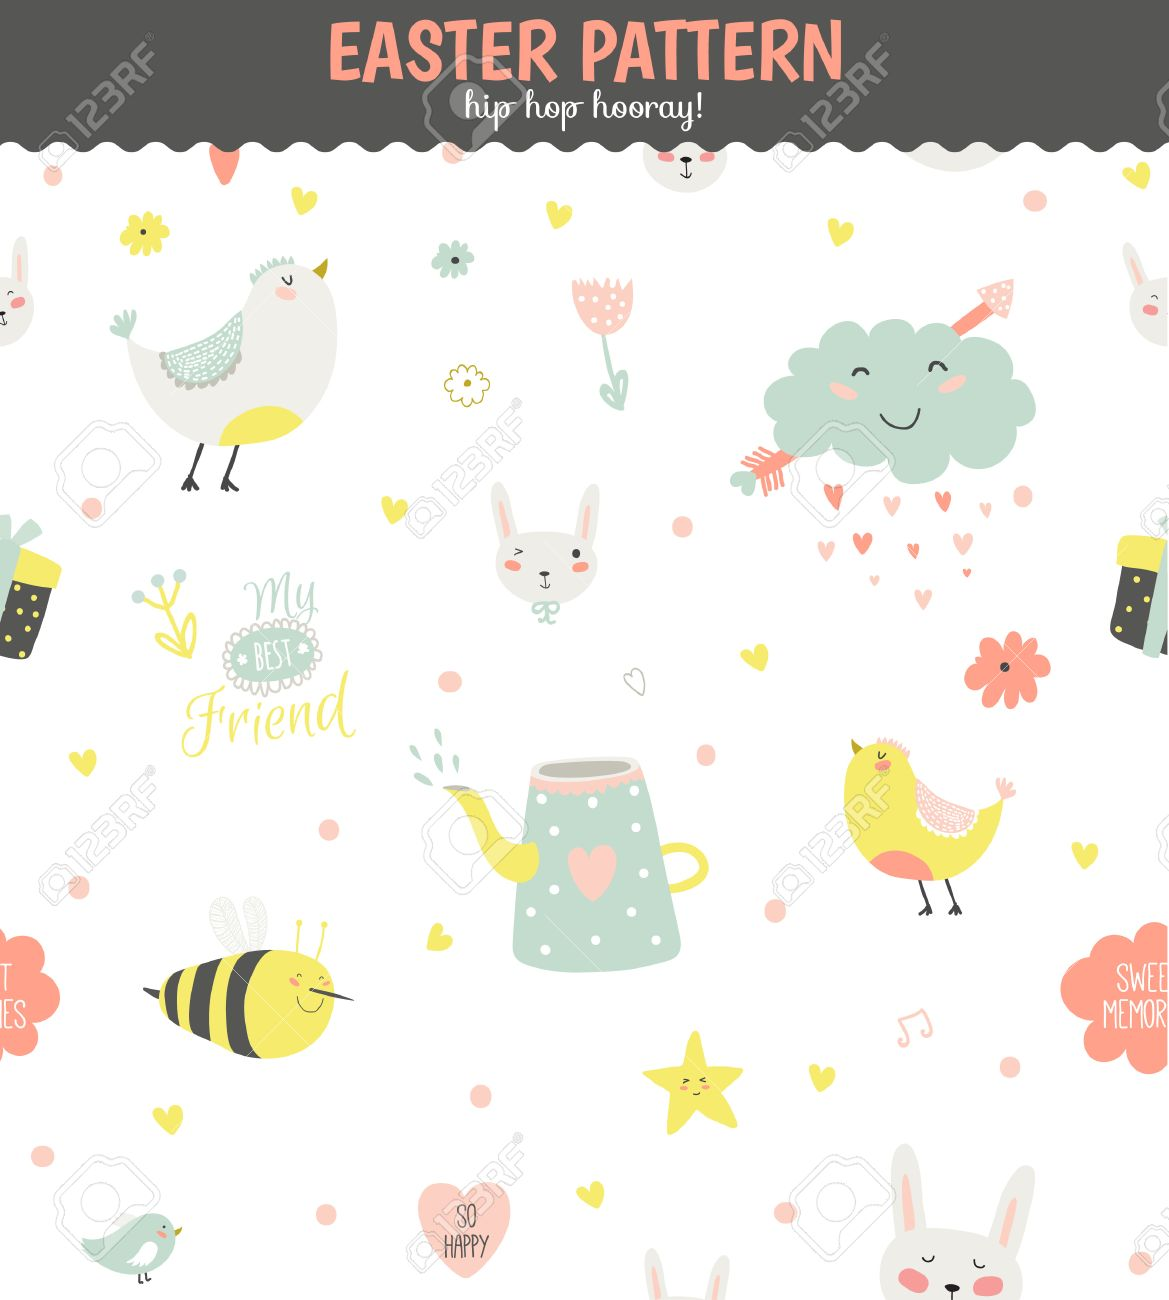 cute funny seamless pattern with animals, bunny, hearts, stars